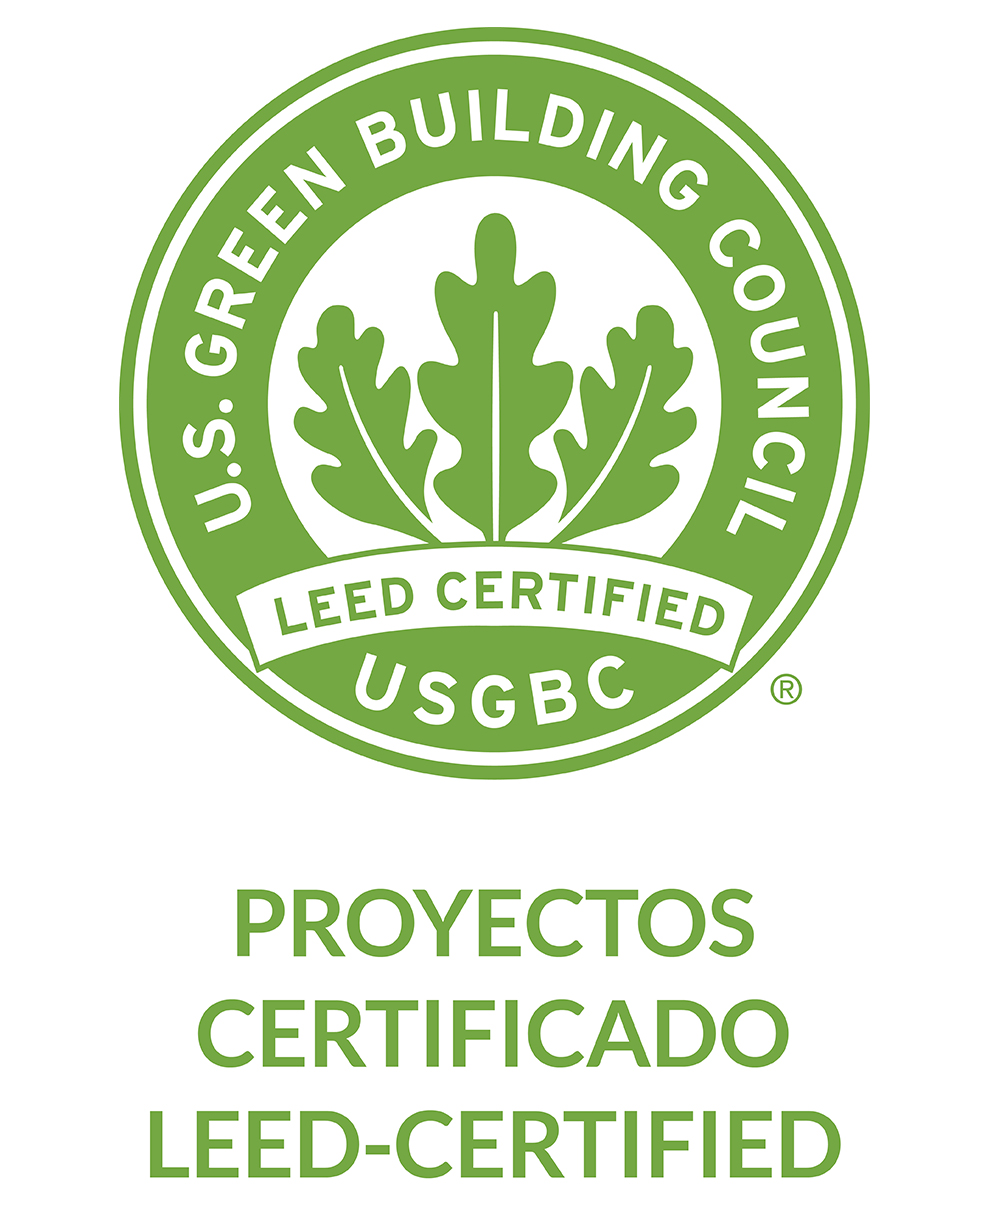 proyectos certificado leed certified green building council usgbc